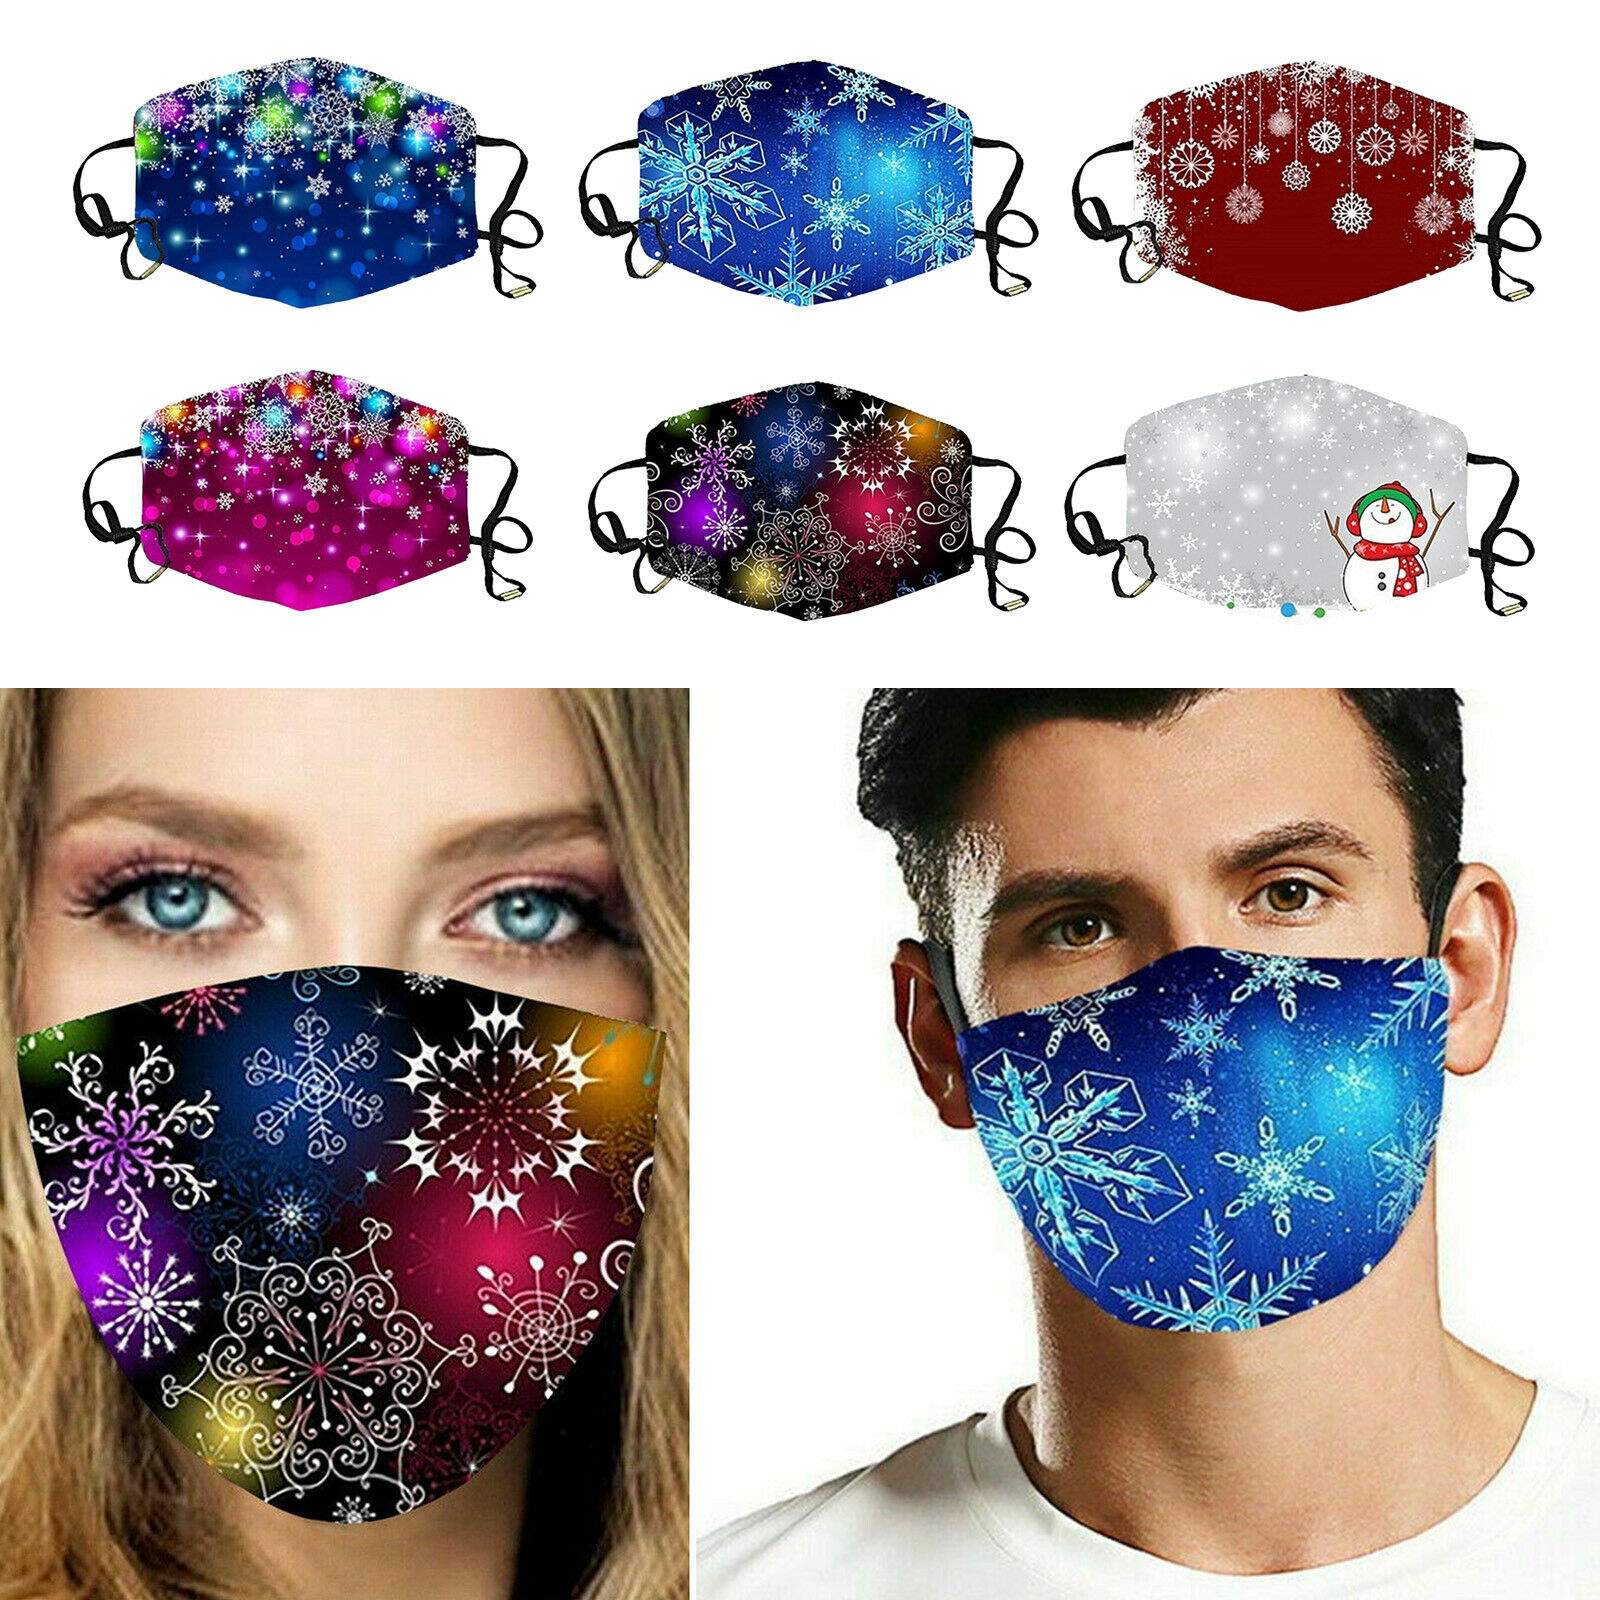 3D printing Christmas pattern face mask cover with reindeer